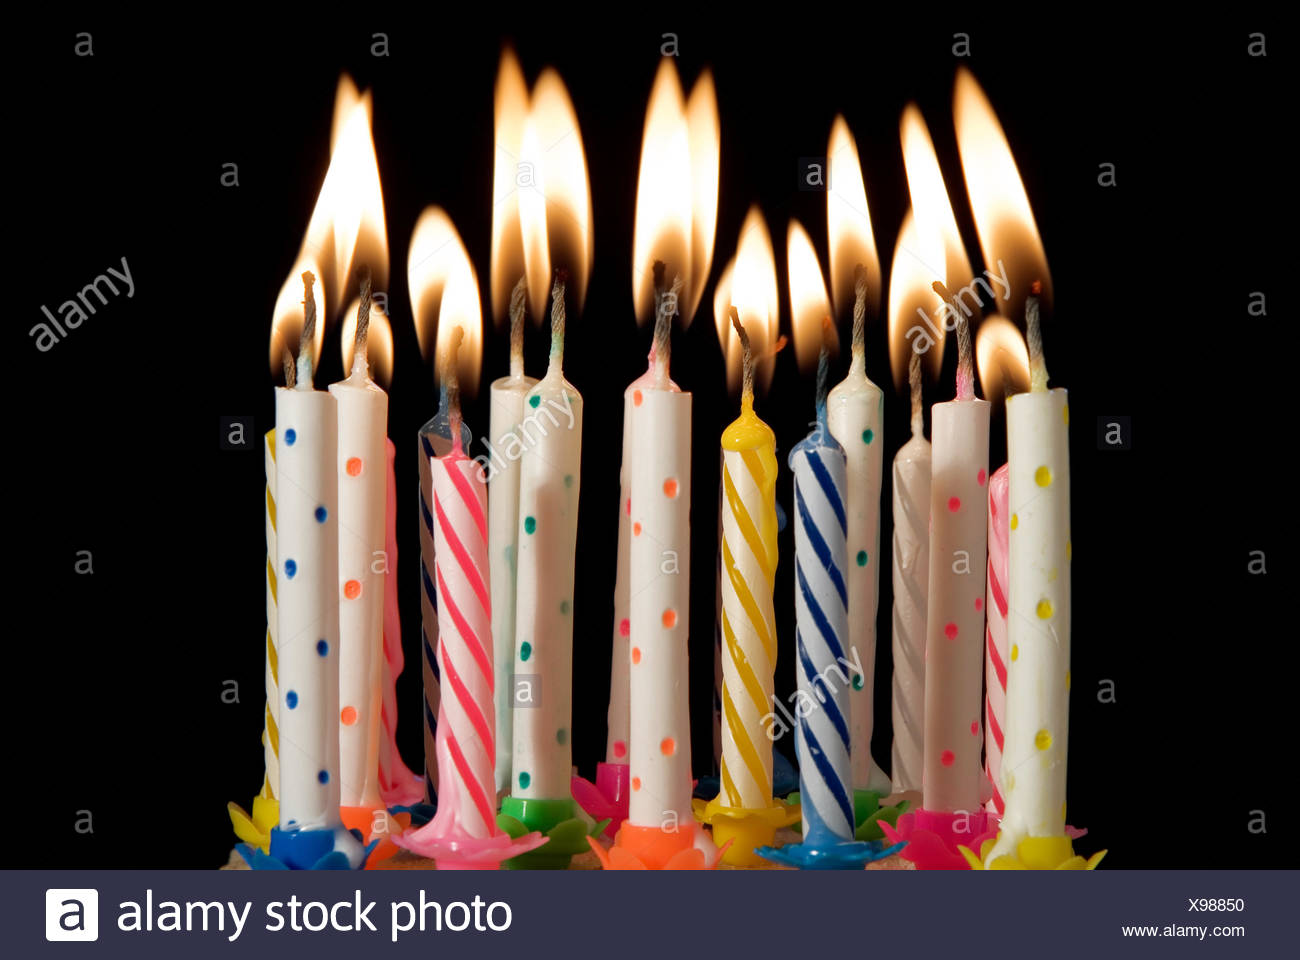 candle party celebration flame flames candles lit birthdays